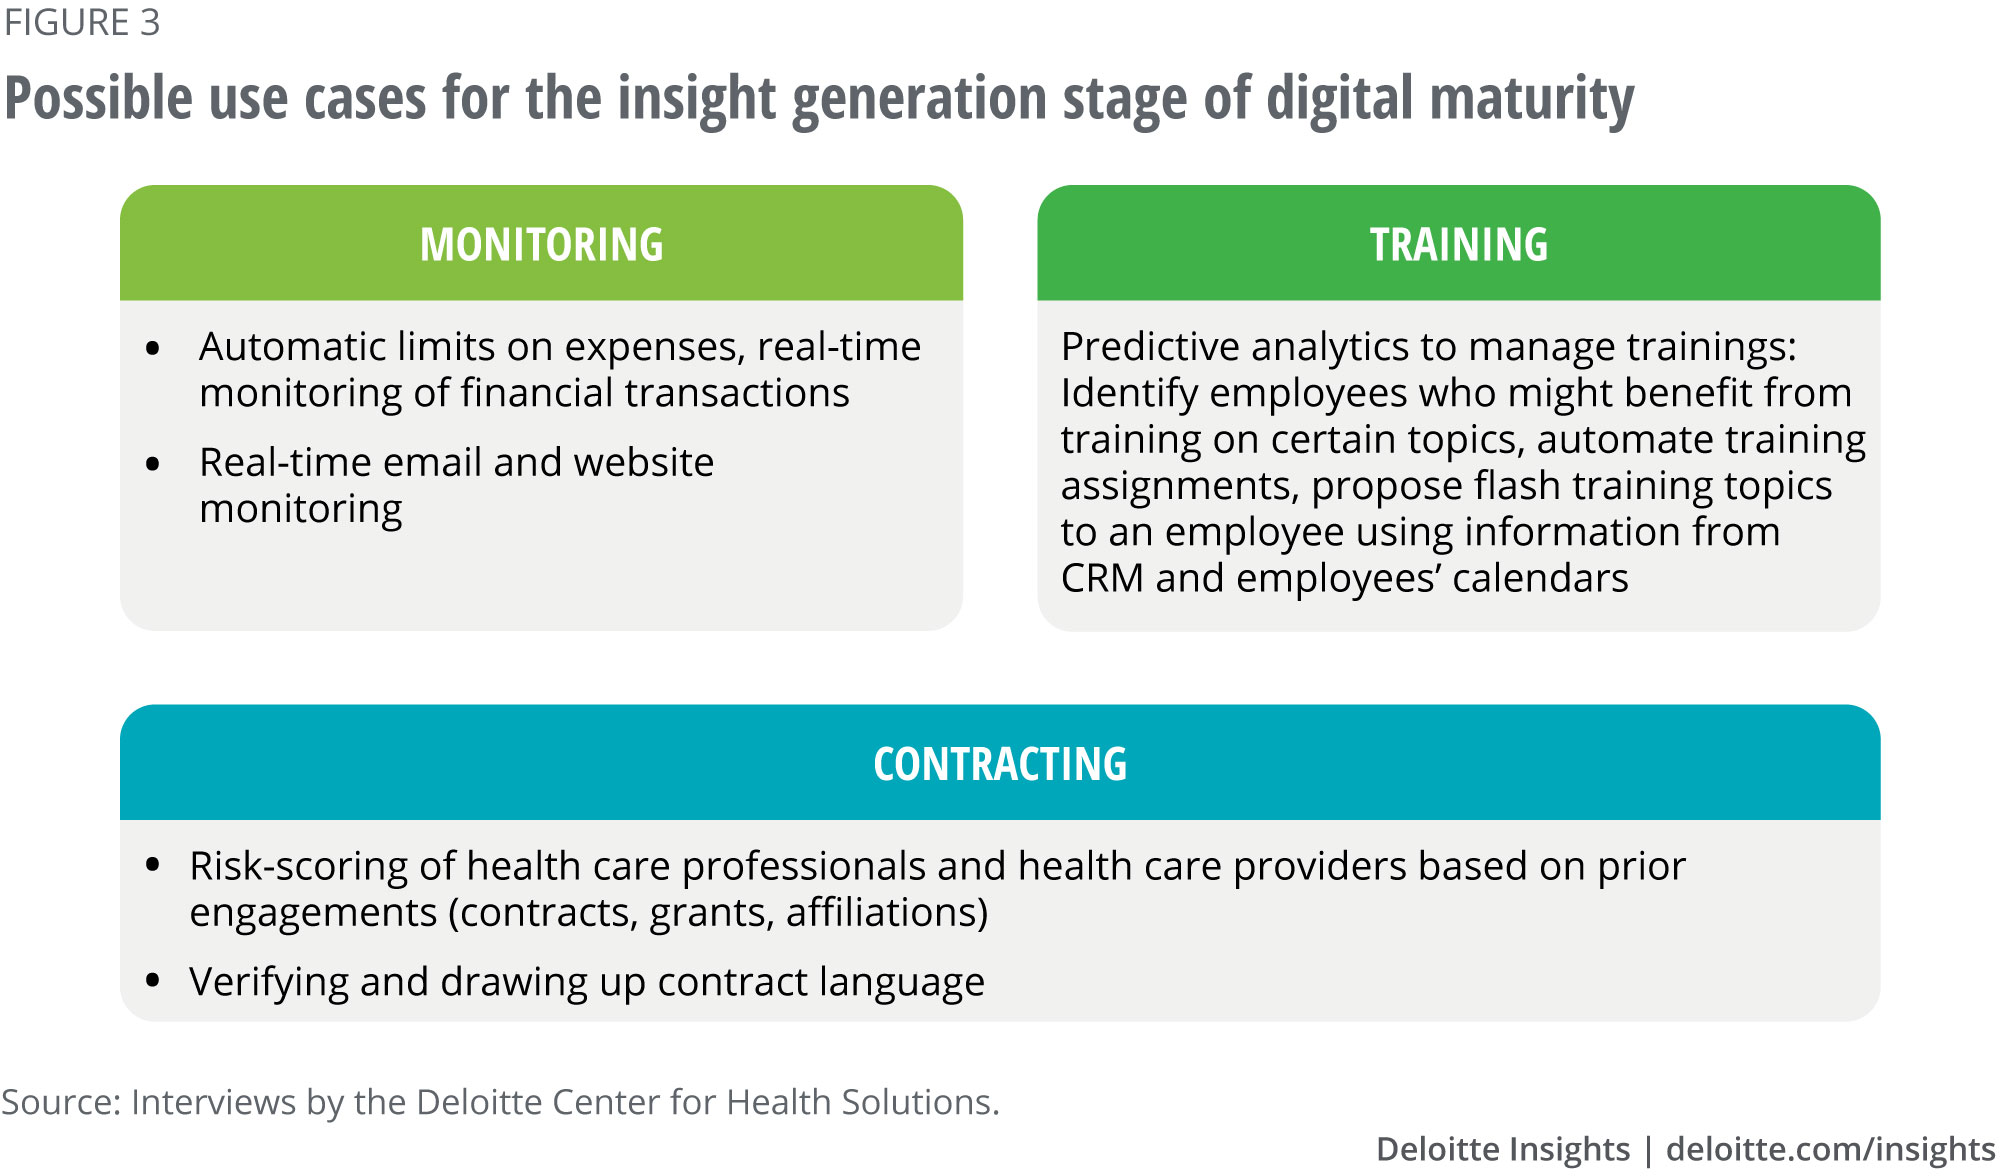 Possible use cases for the insight generation stage of digital maturity